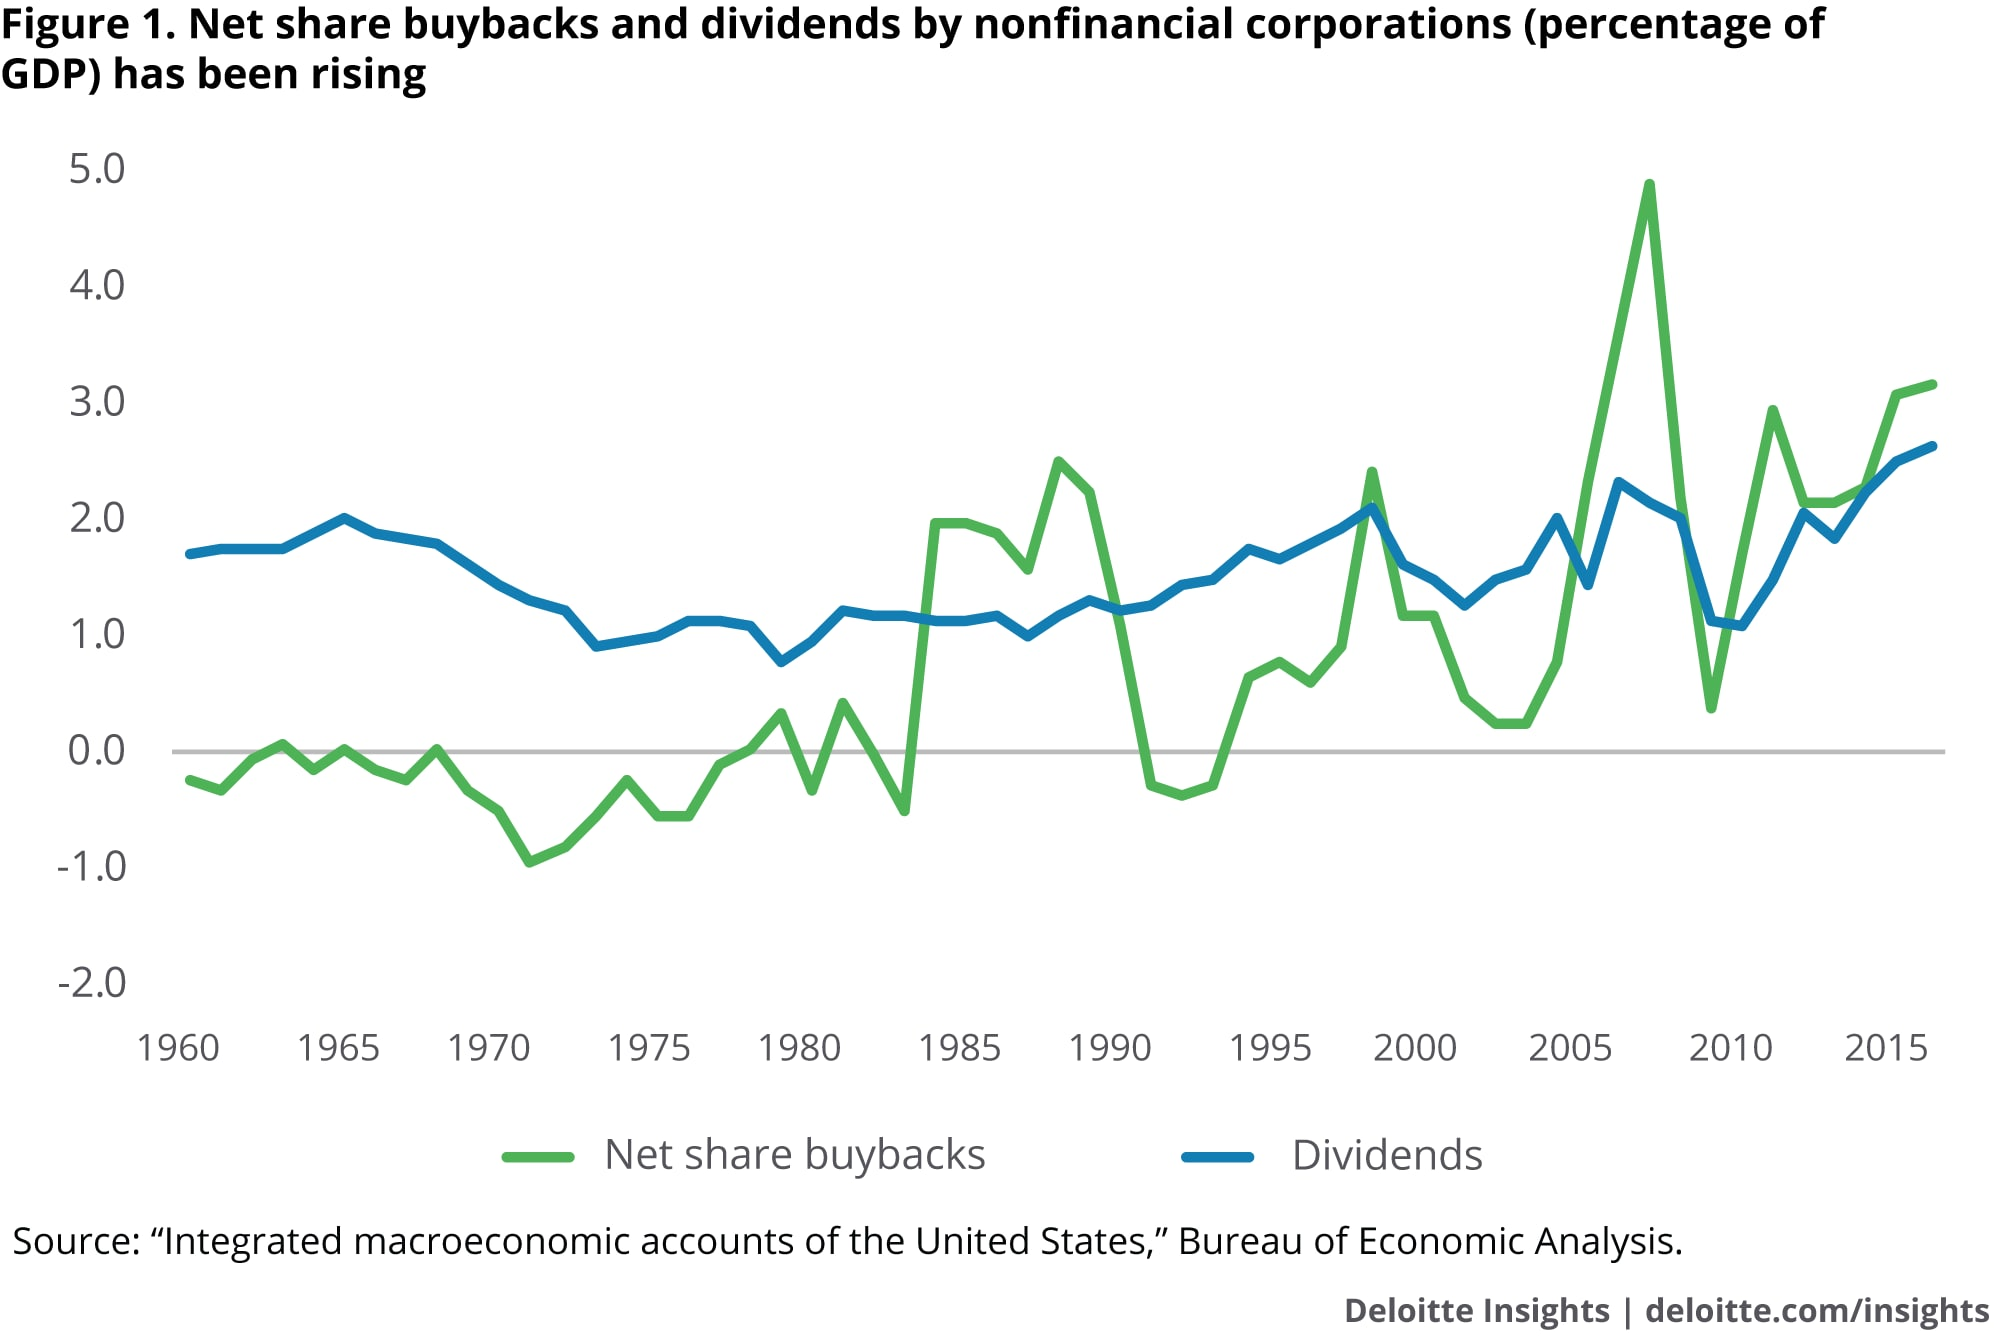 Net share buybacks and dividends by nonfinancial corporations (percentage of GDP) has been rising